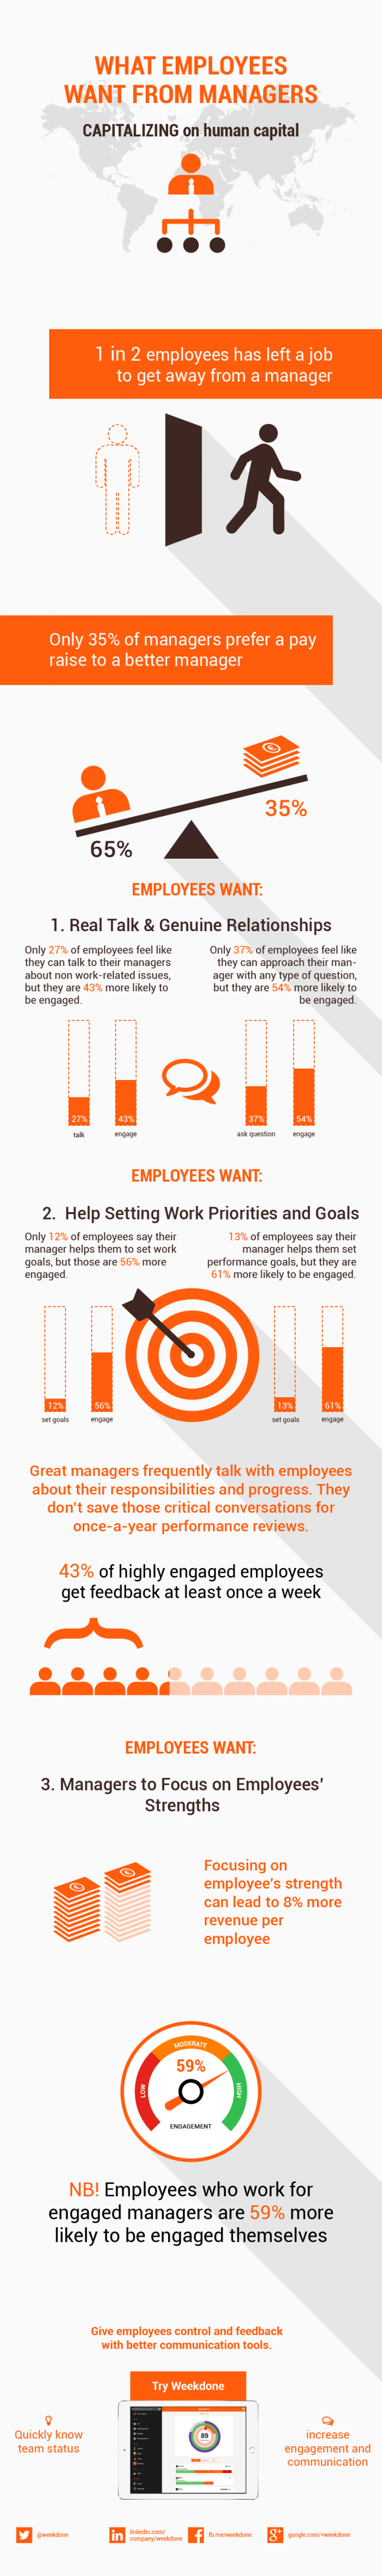 What your employees want and why you should care Image